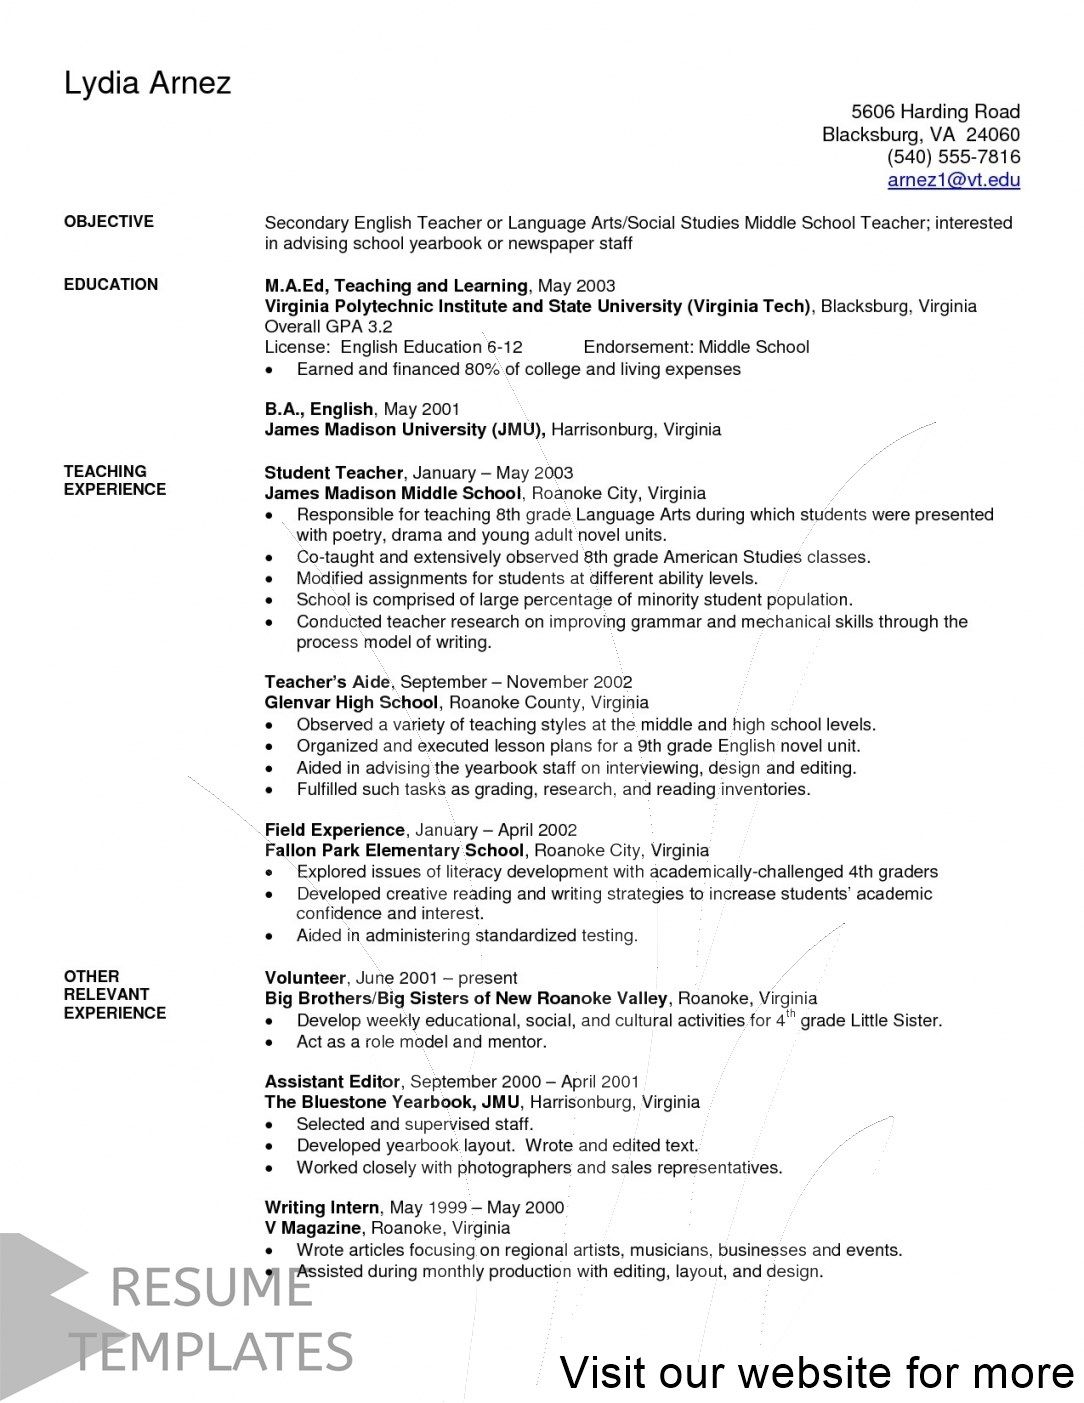 Resume Builder Usajobs Professional Resume Writing Tips Resume Template Professional Resume Writing